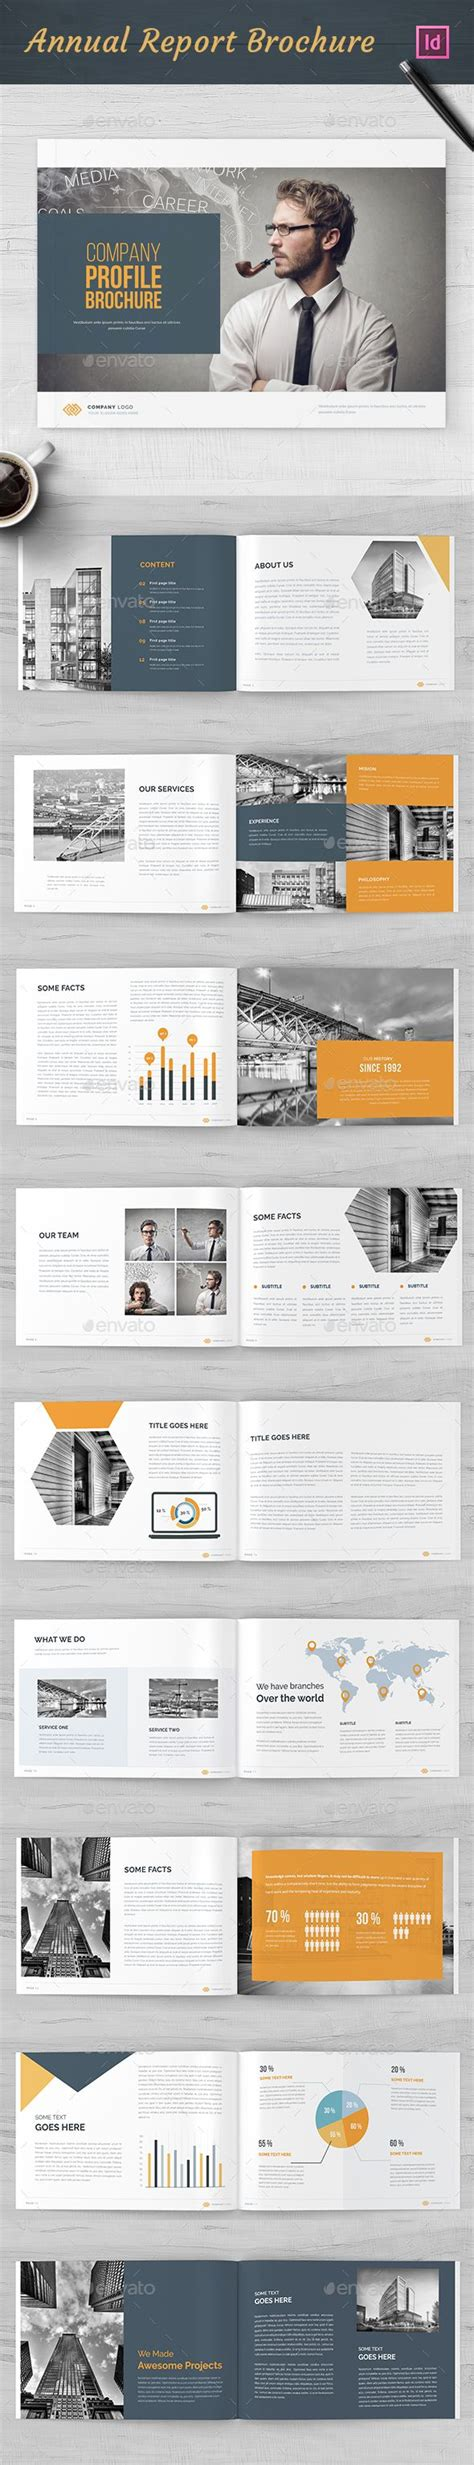 Https Graphicriver Net Item Divided Annual Report Template 13185075 569 Best Work Design Images On